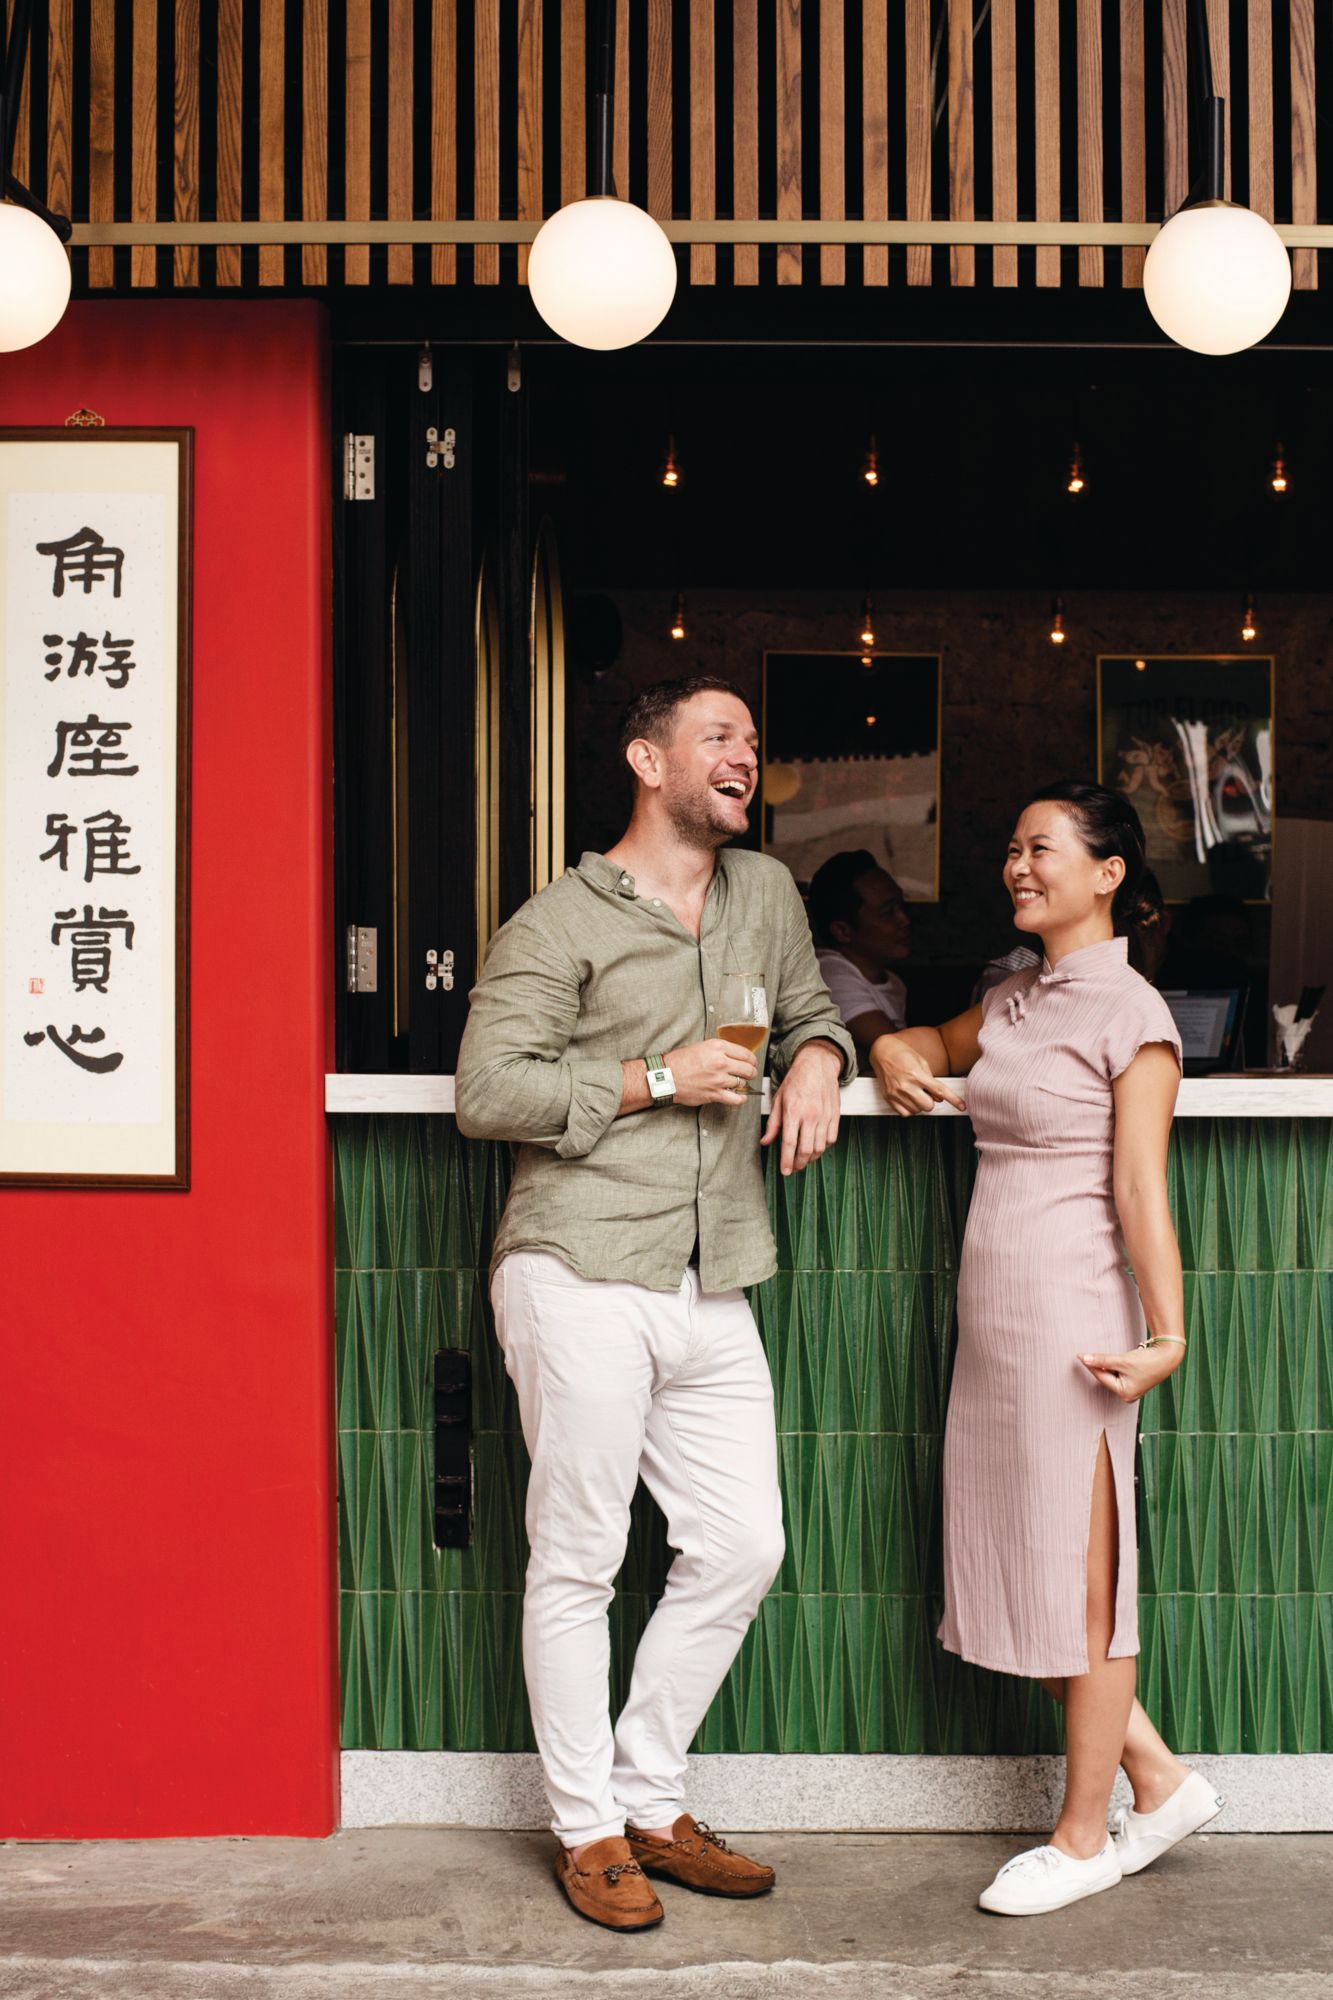 Laszlo And Michele Raphael On Opening Their First Bar Moonkok And The Best Places To Eat And Drink In Kowloon photo